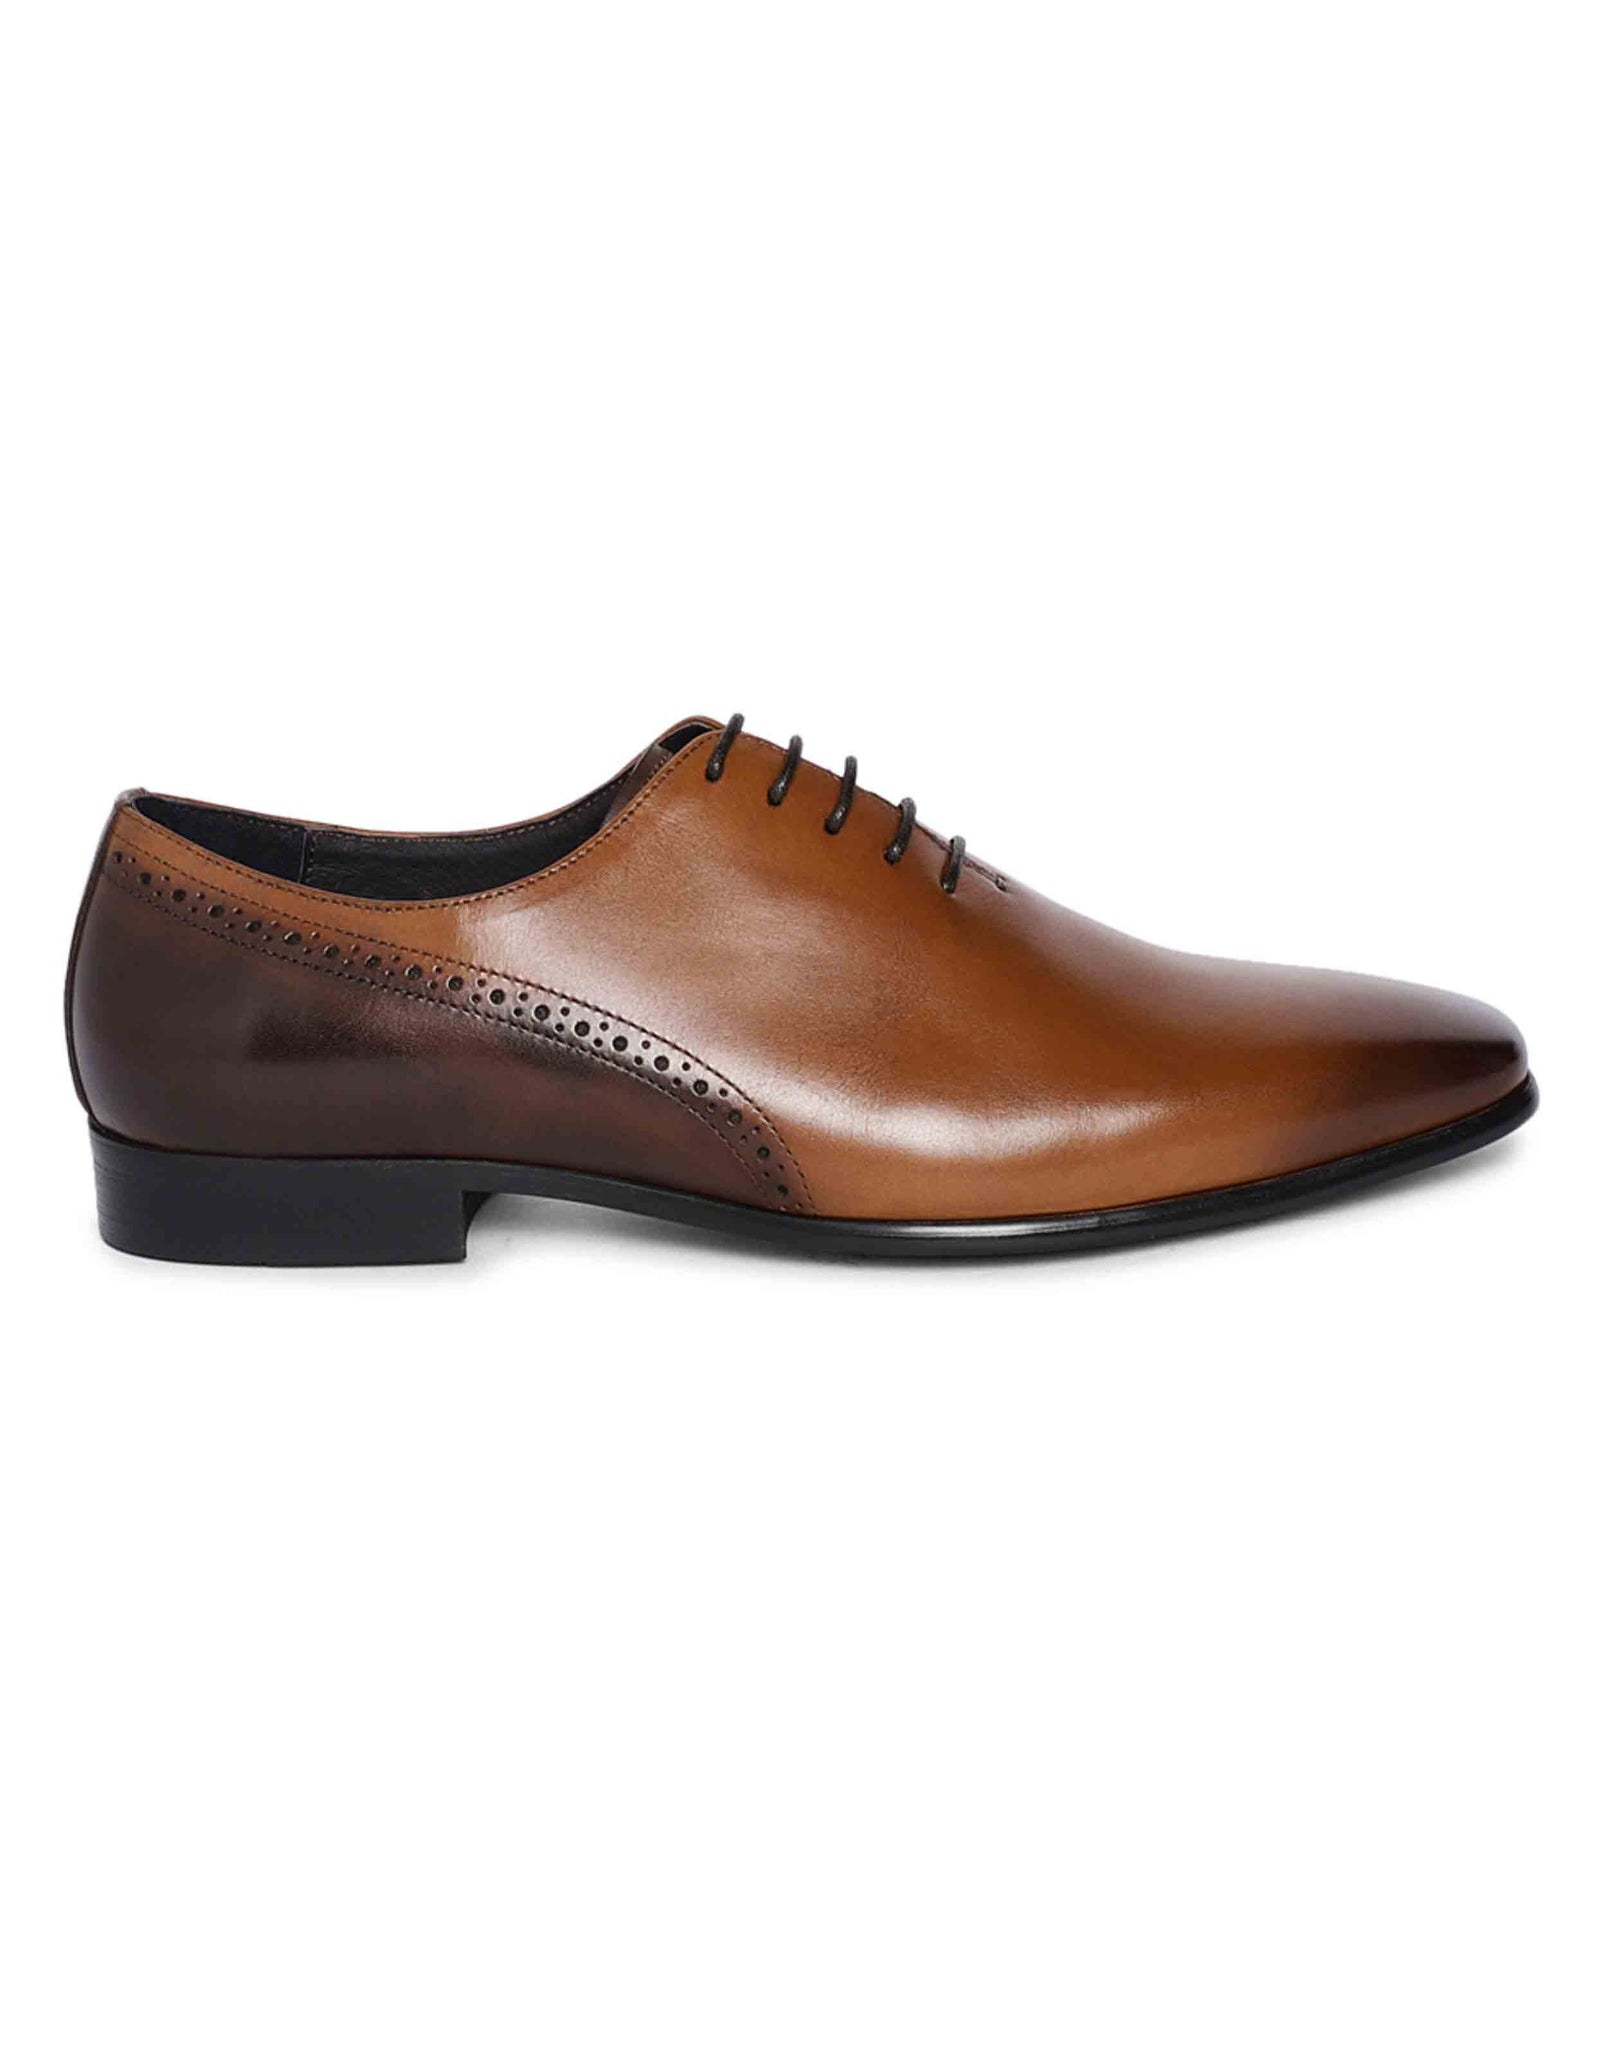 Dual Tone Oxfords